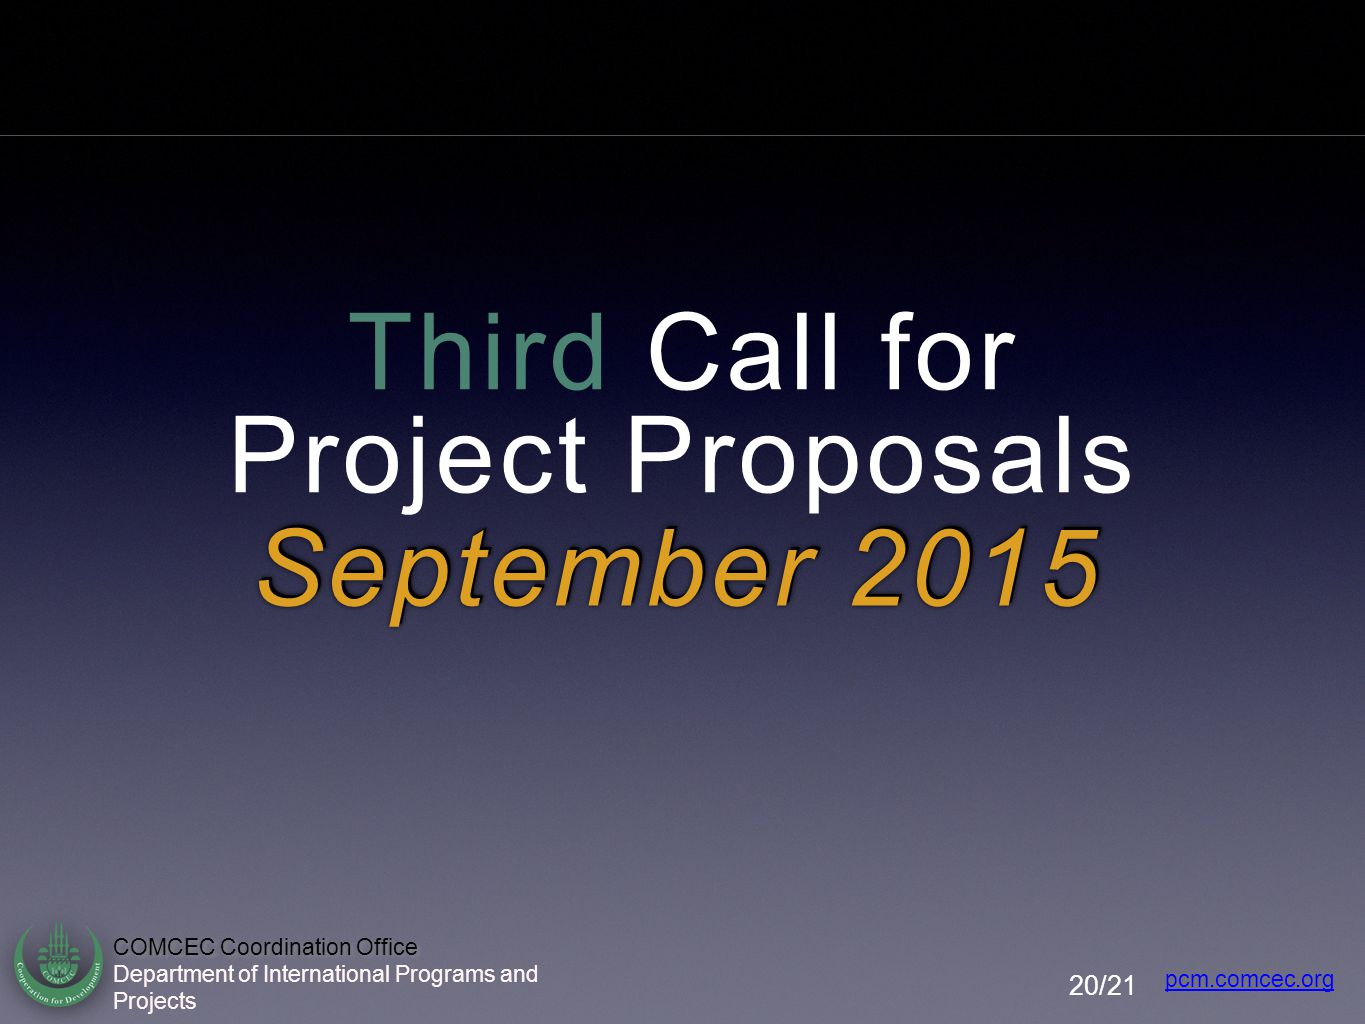 Third Call for Project Proposals